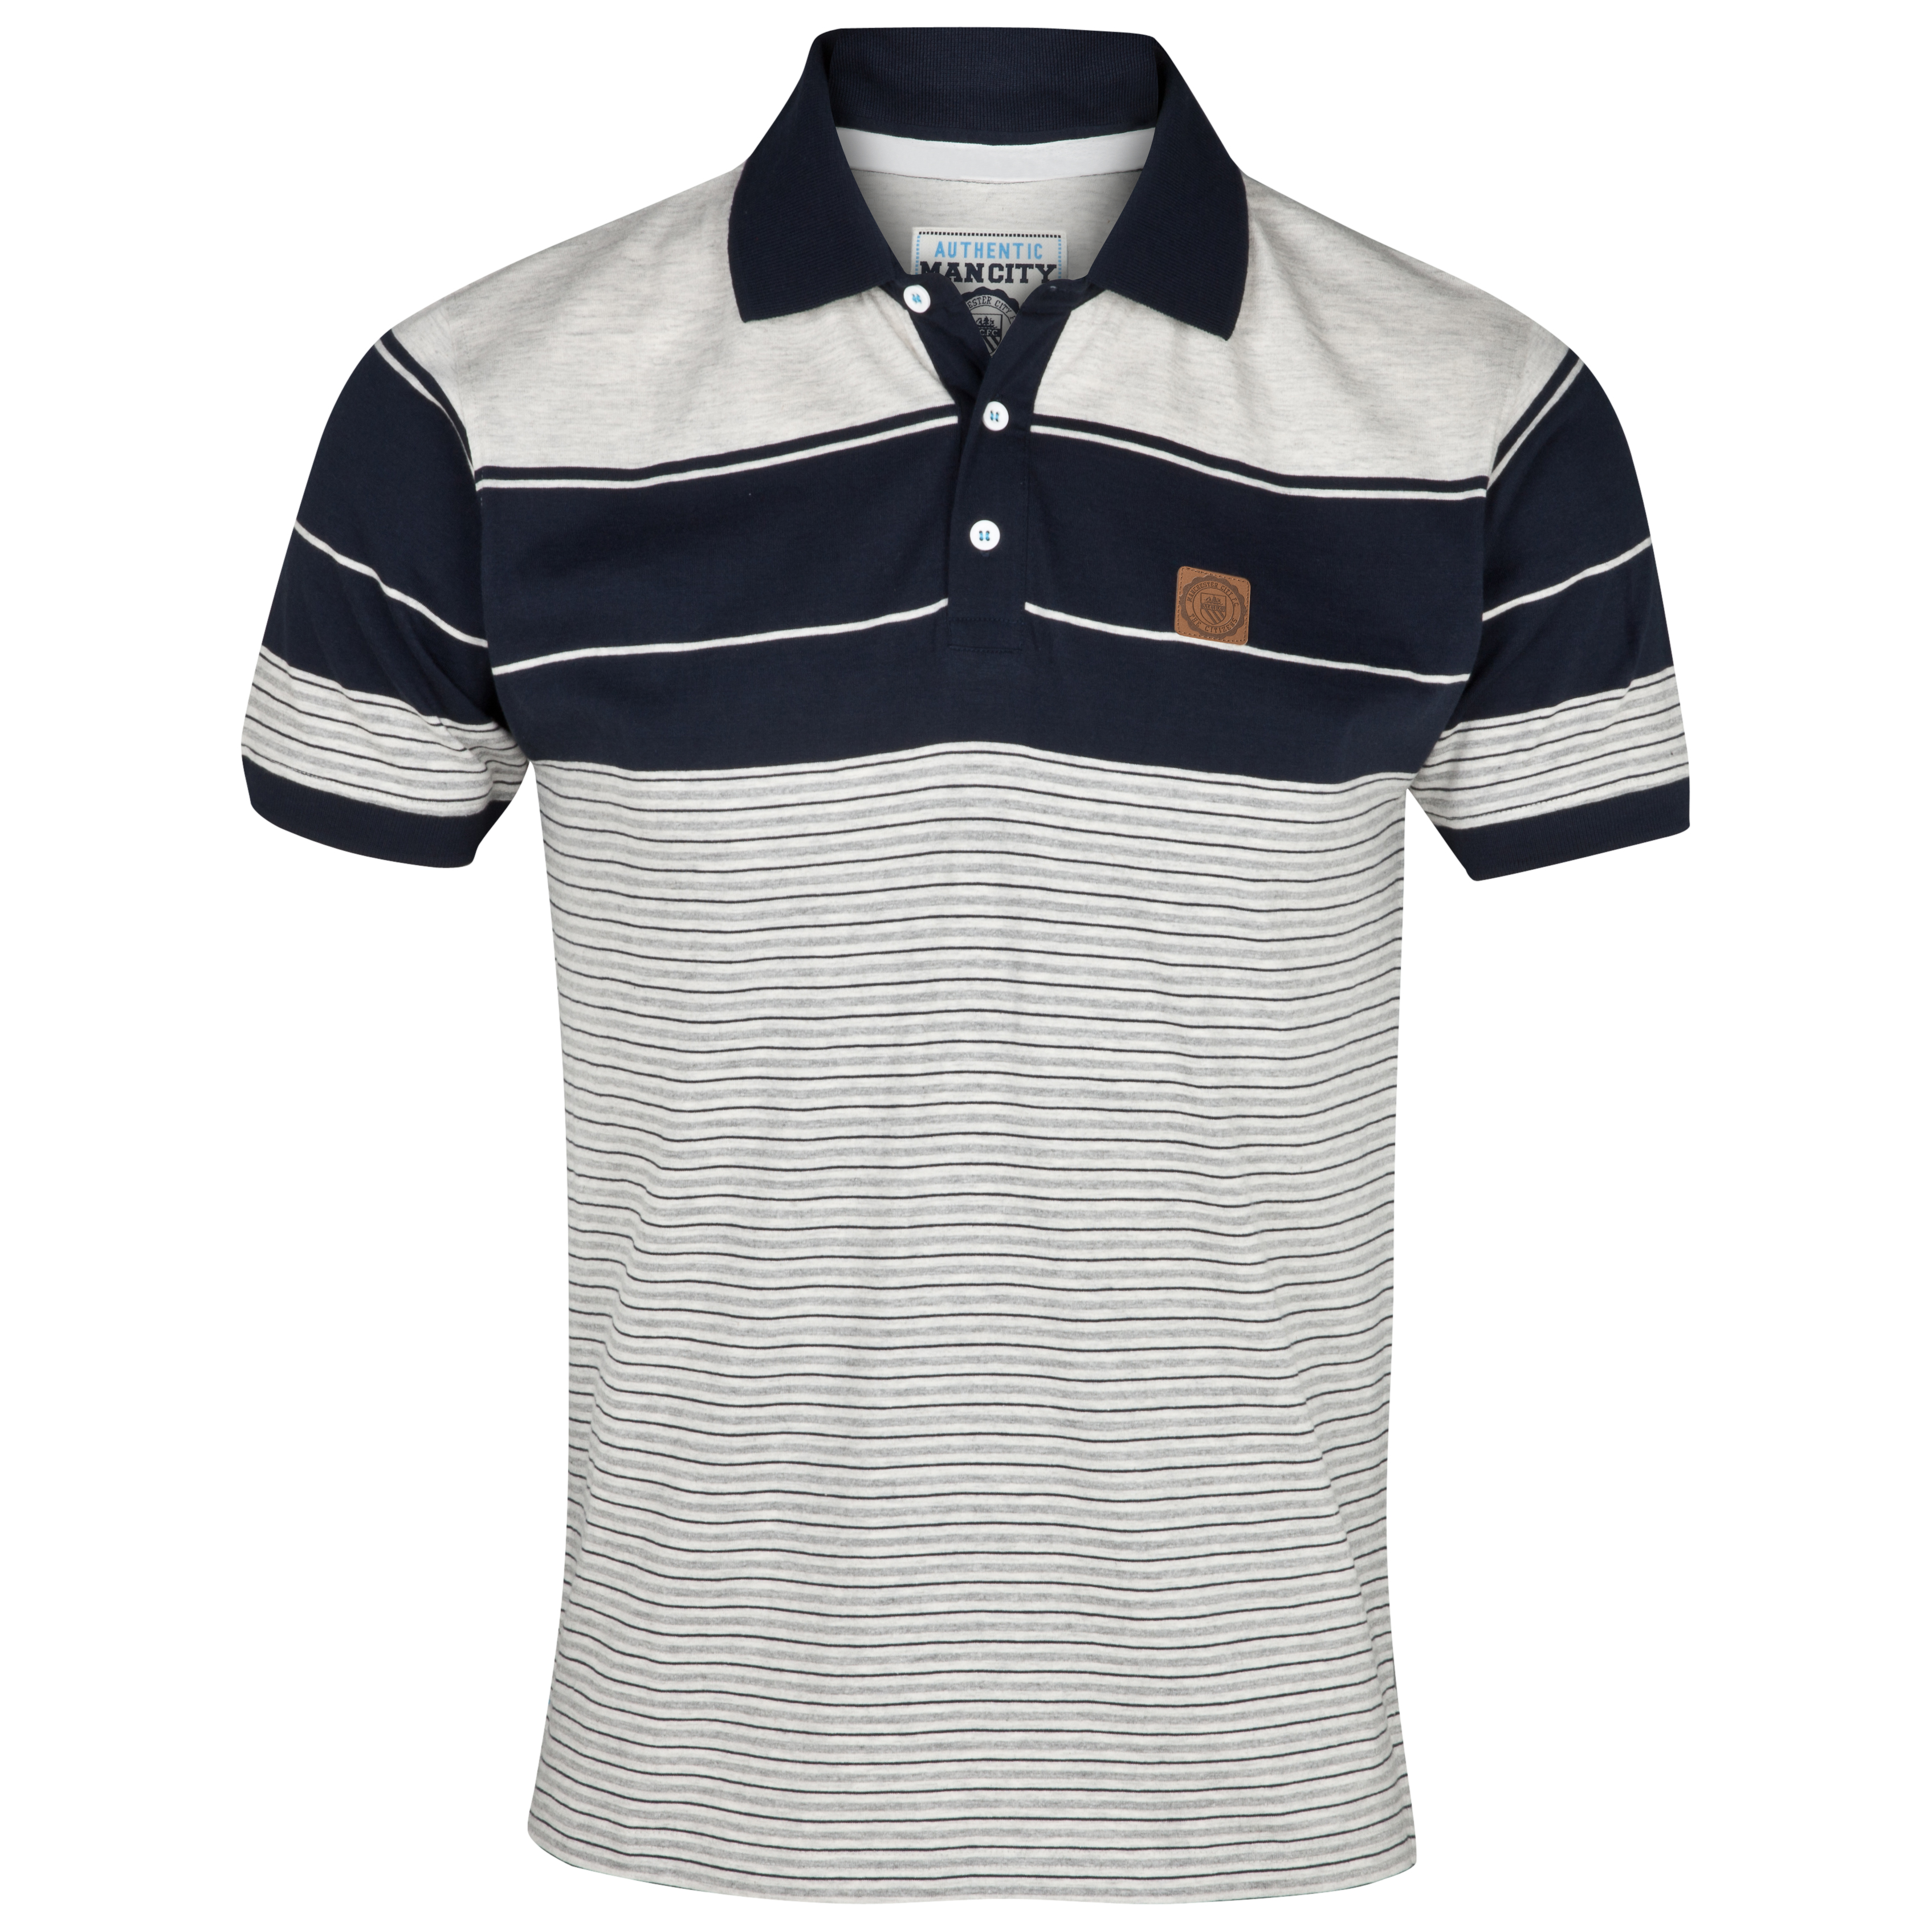 Manchester City Tide Polo Top - Navy/Ecru Marl